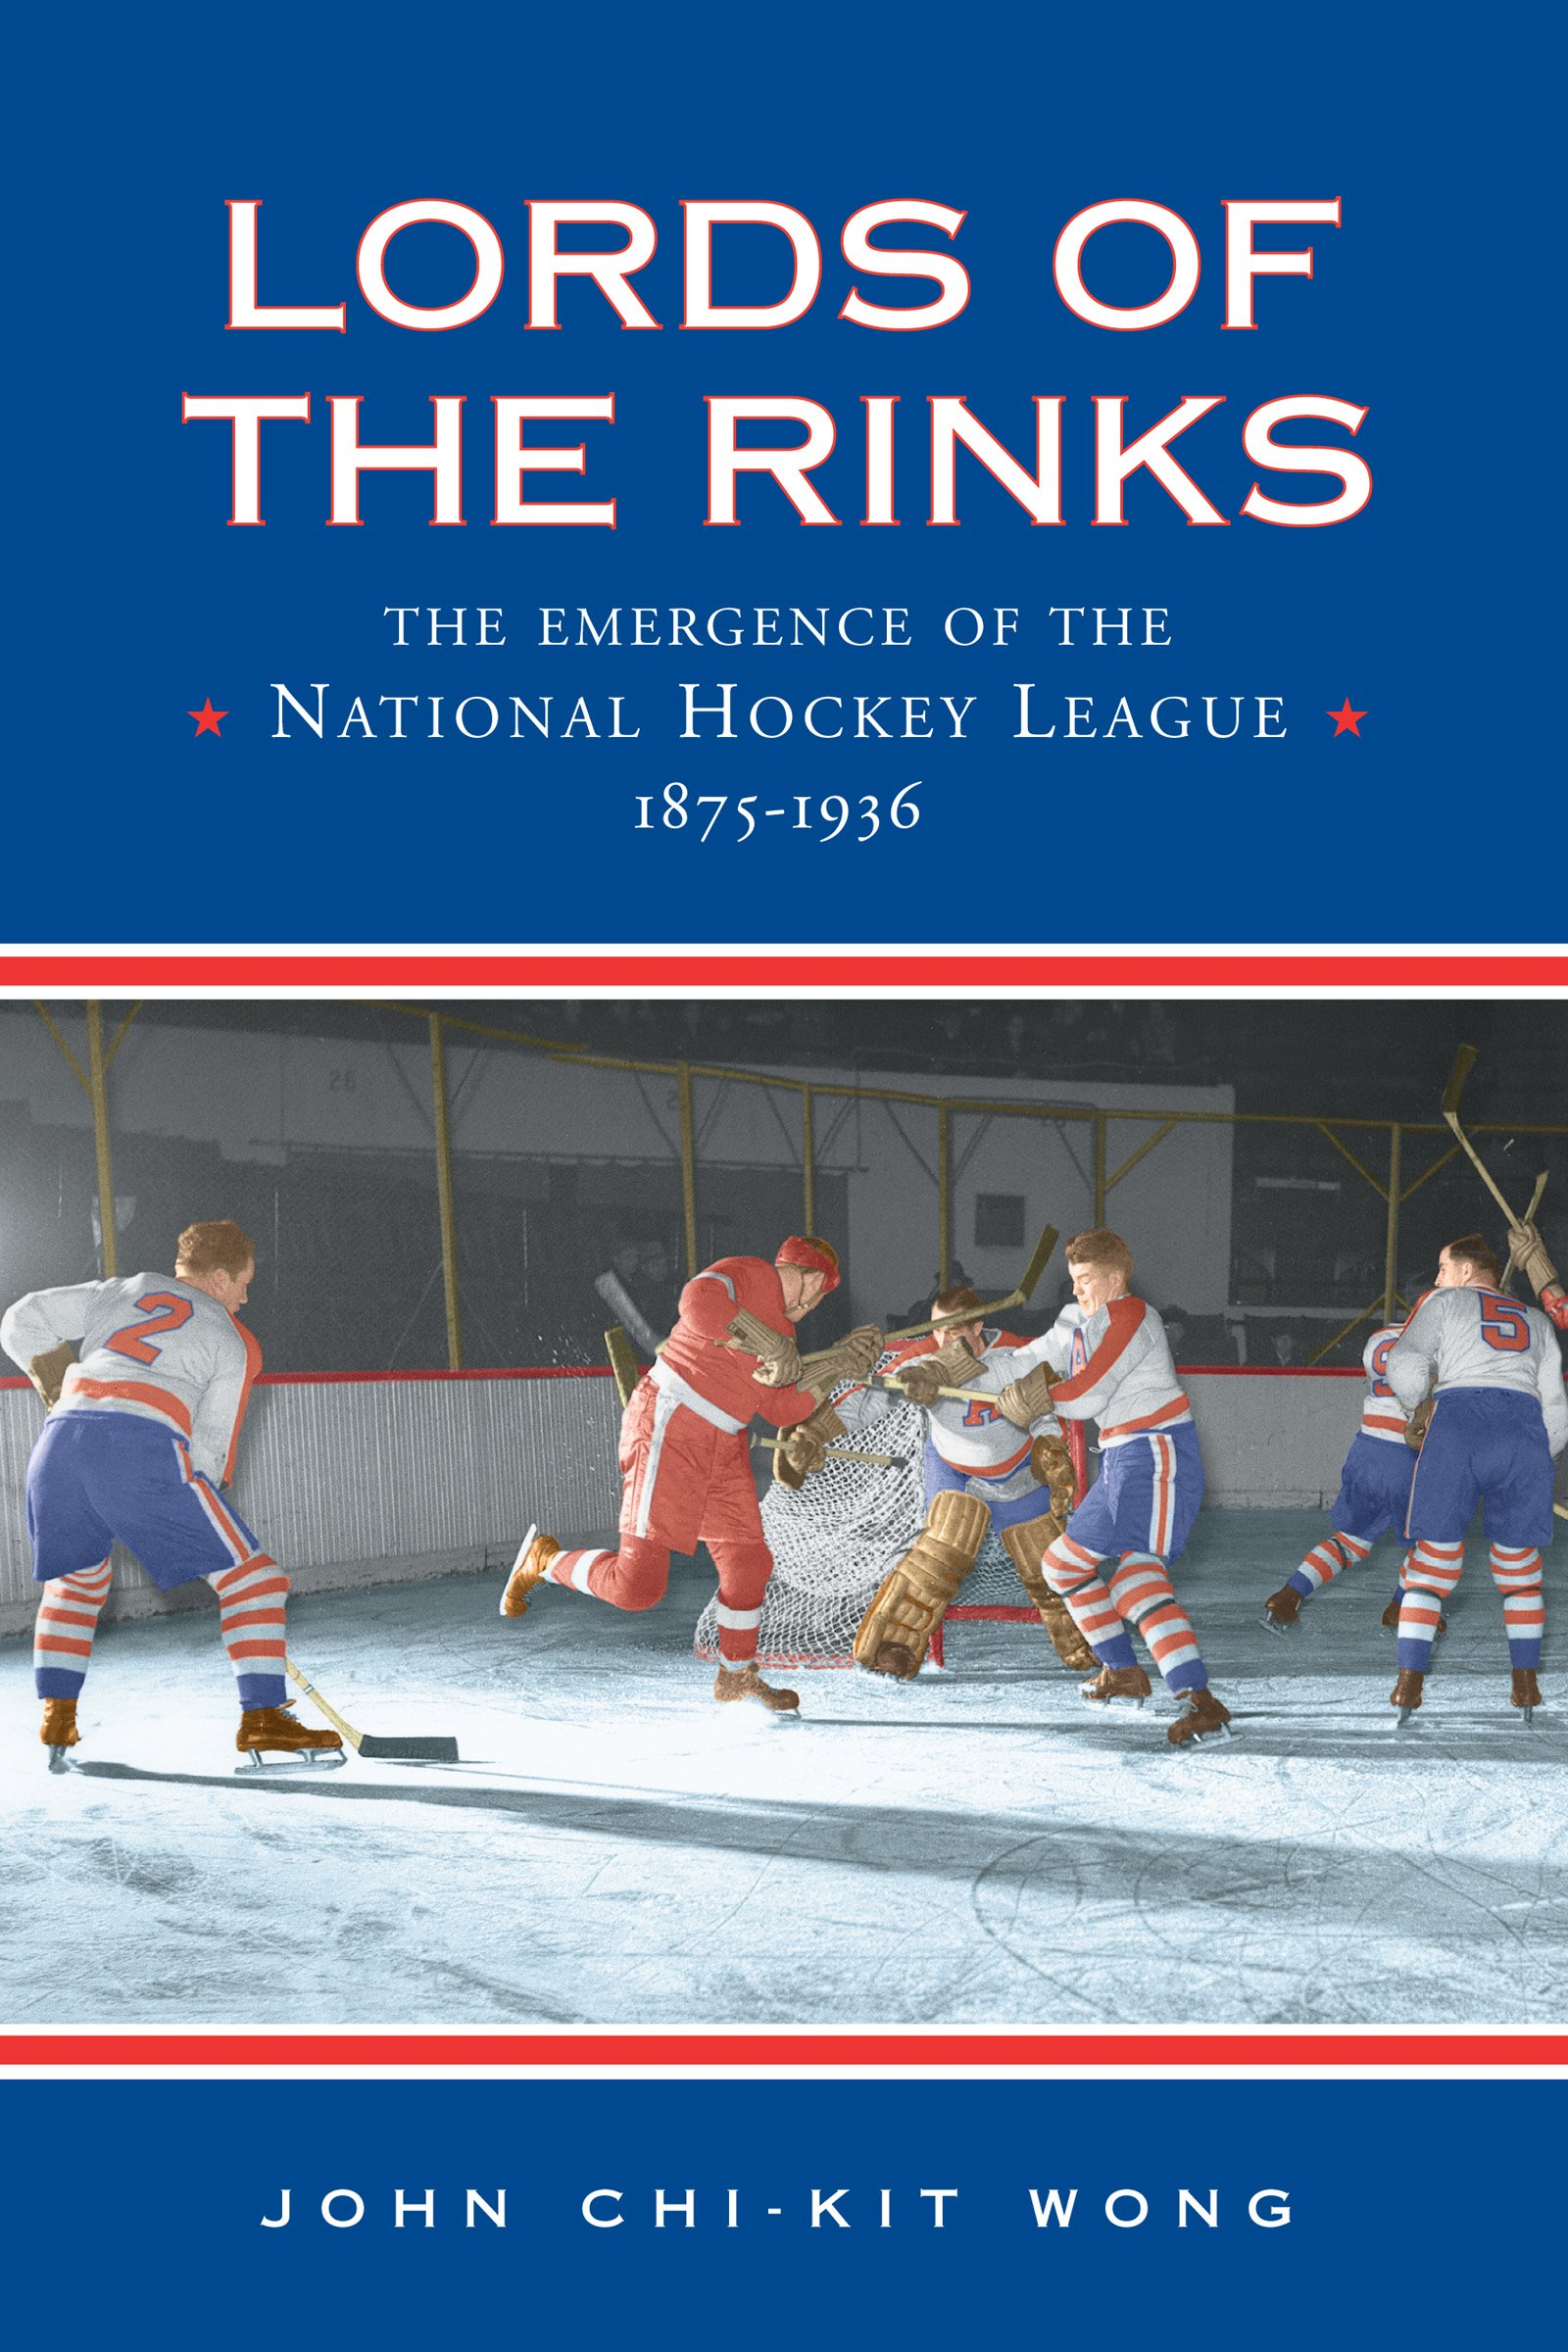 Download Lords of the Rinks: The Emergence of the National Hockey League, 1875 1936 (Heritage) (English Edition)